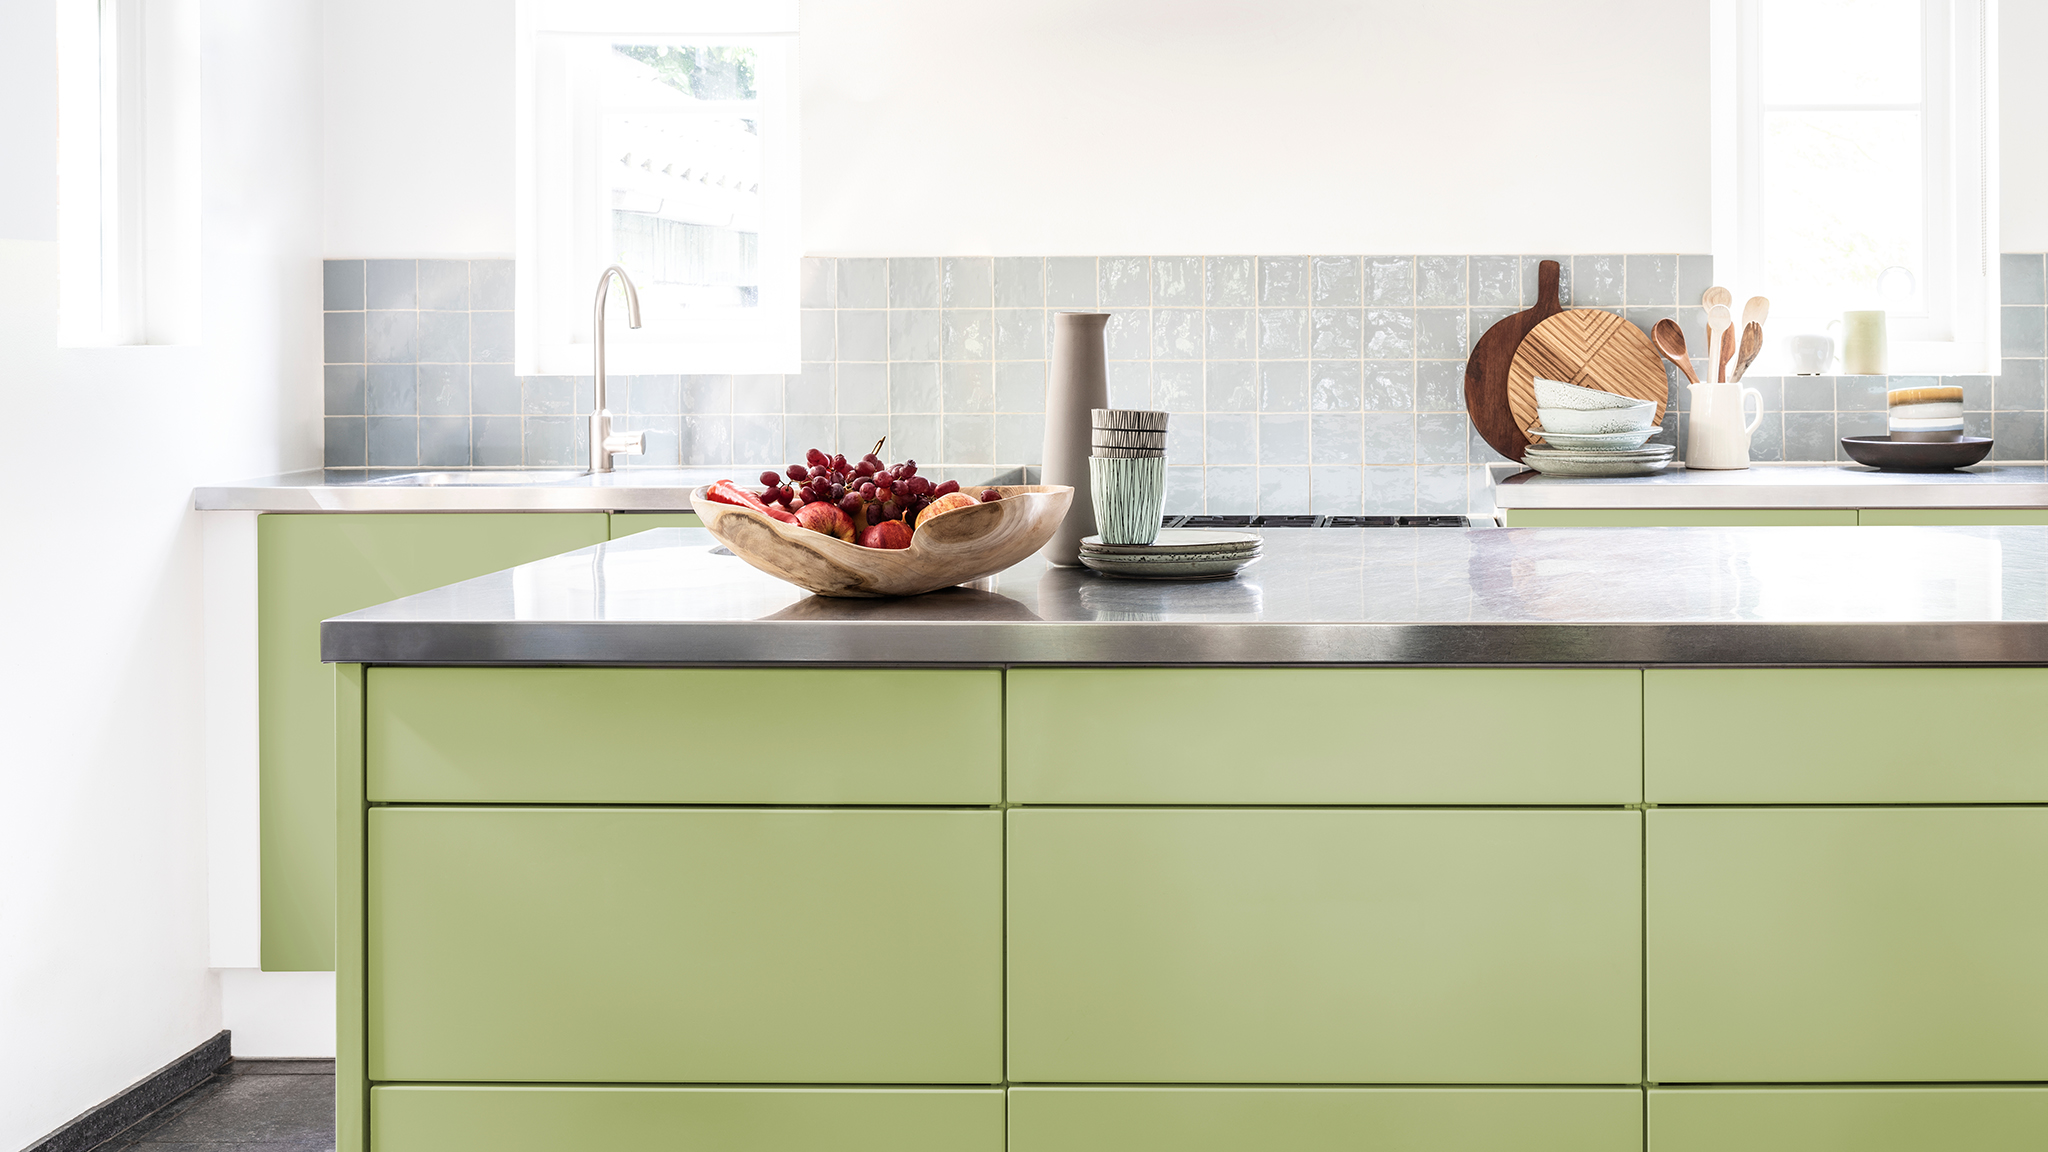 dulux-simply-refresh-kitchen-cabinets-ideas-global-2